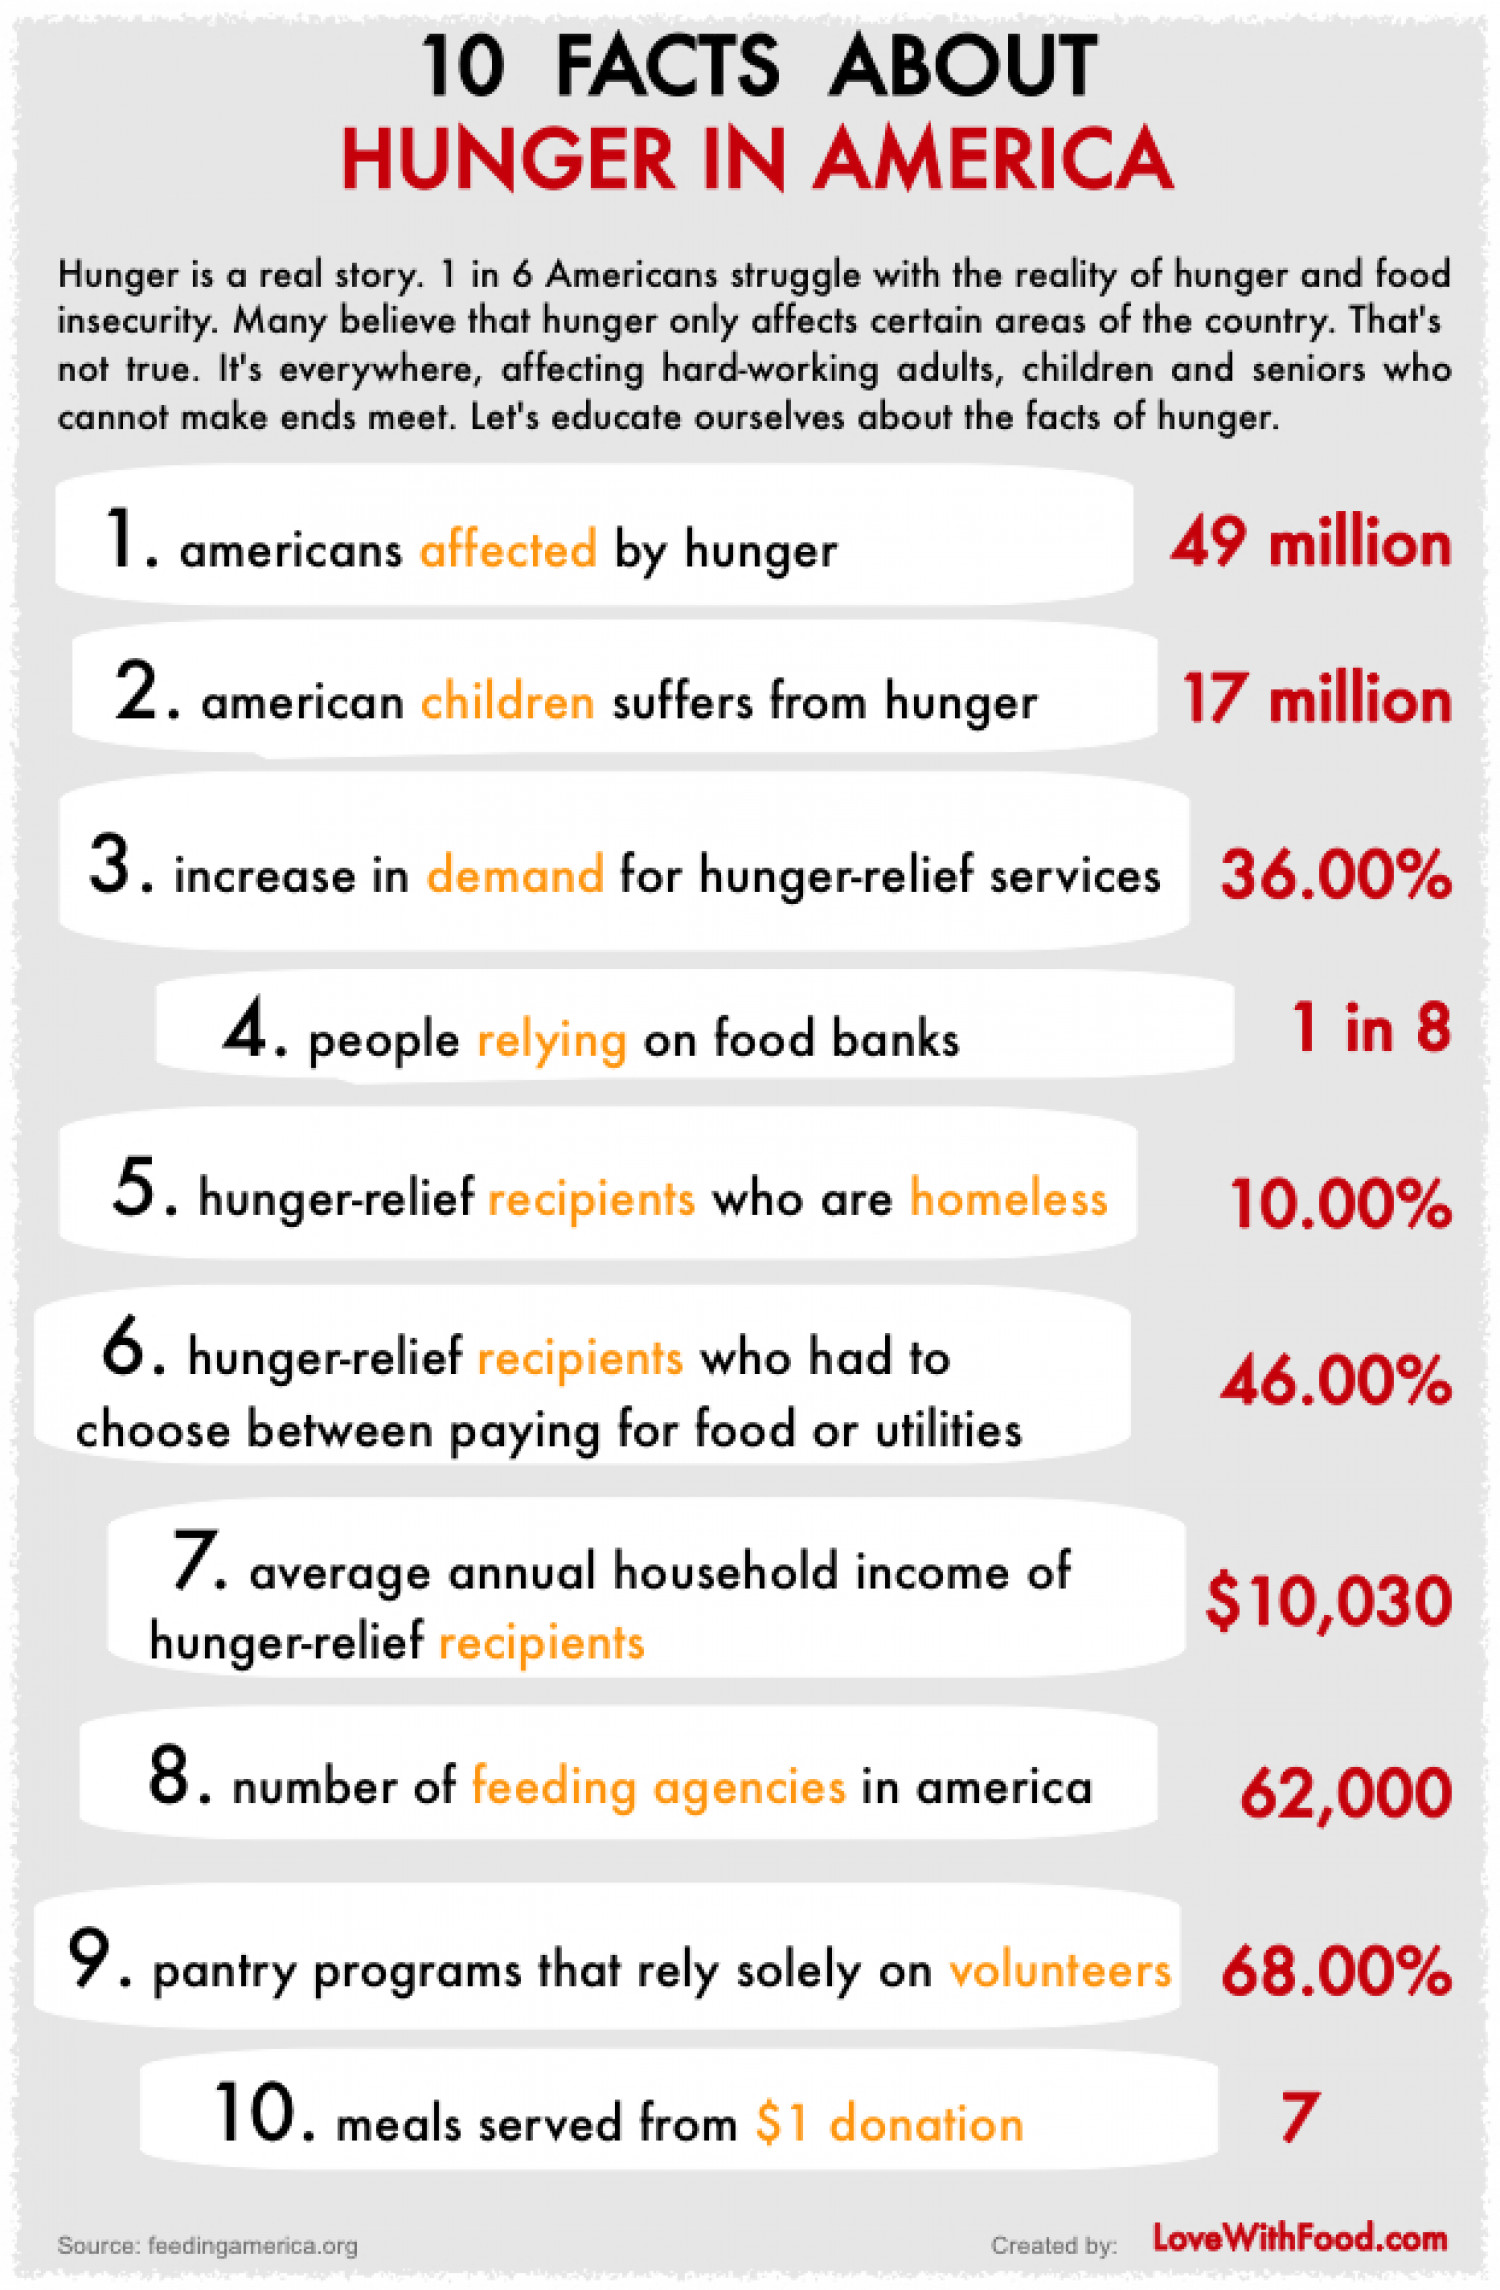 10 Facts About Hunger In America